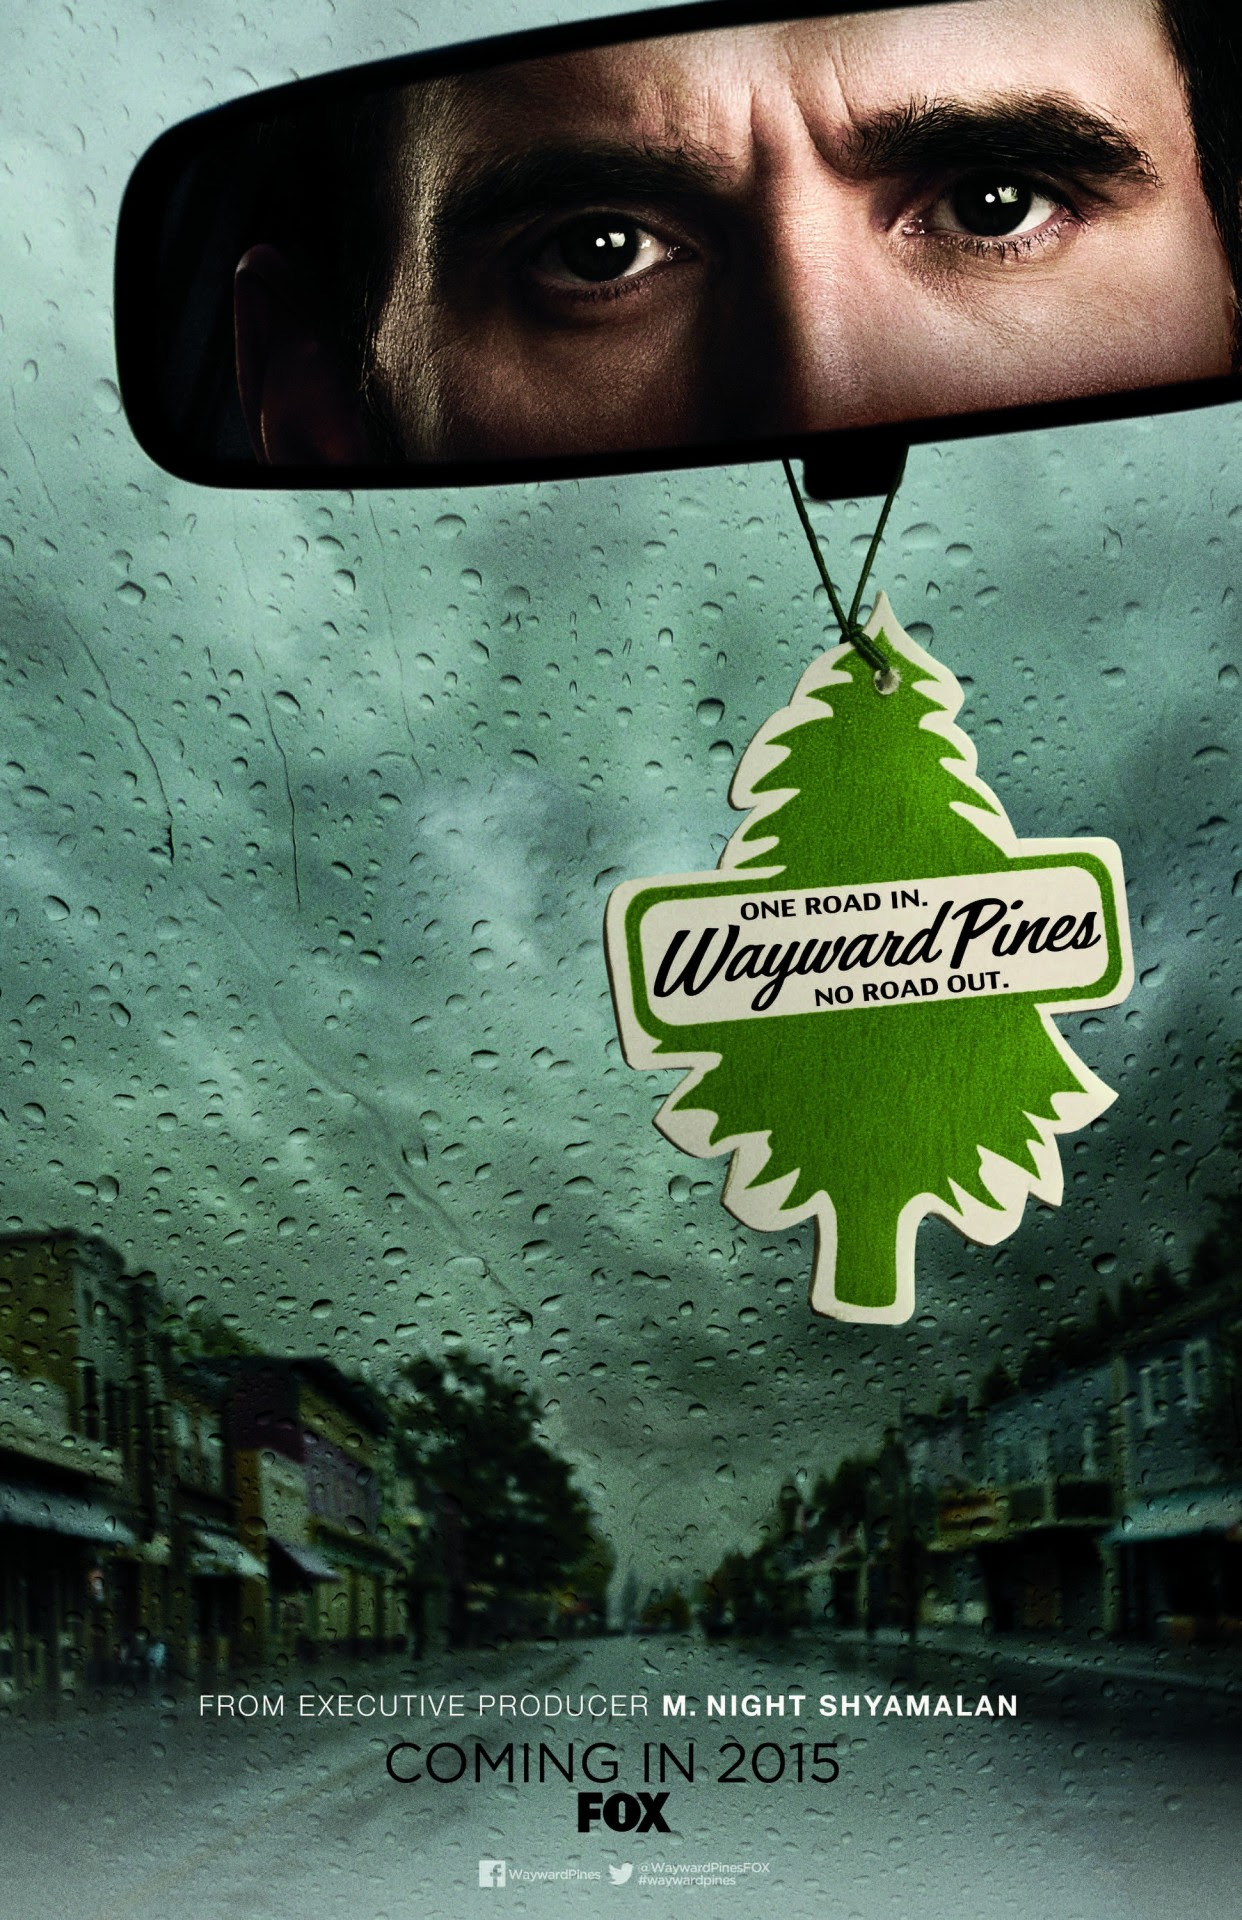 click to see more Wayward Pines content